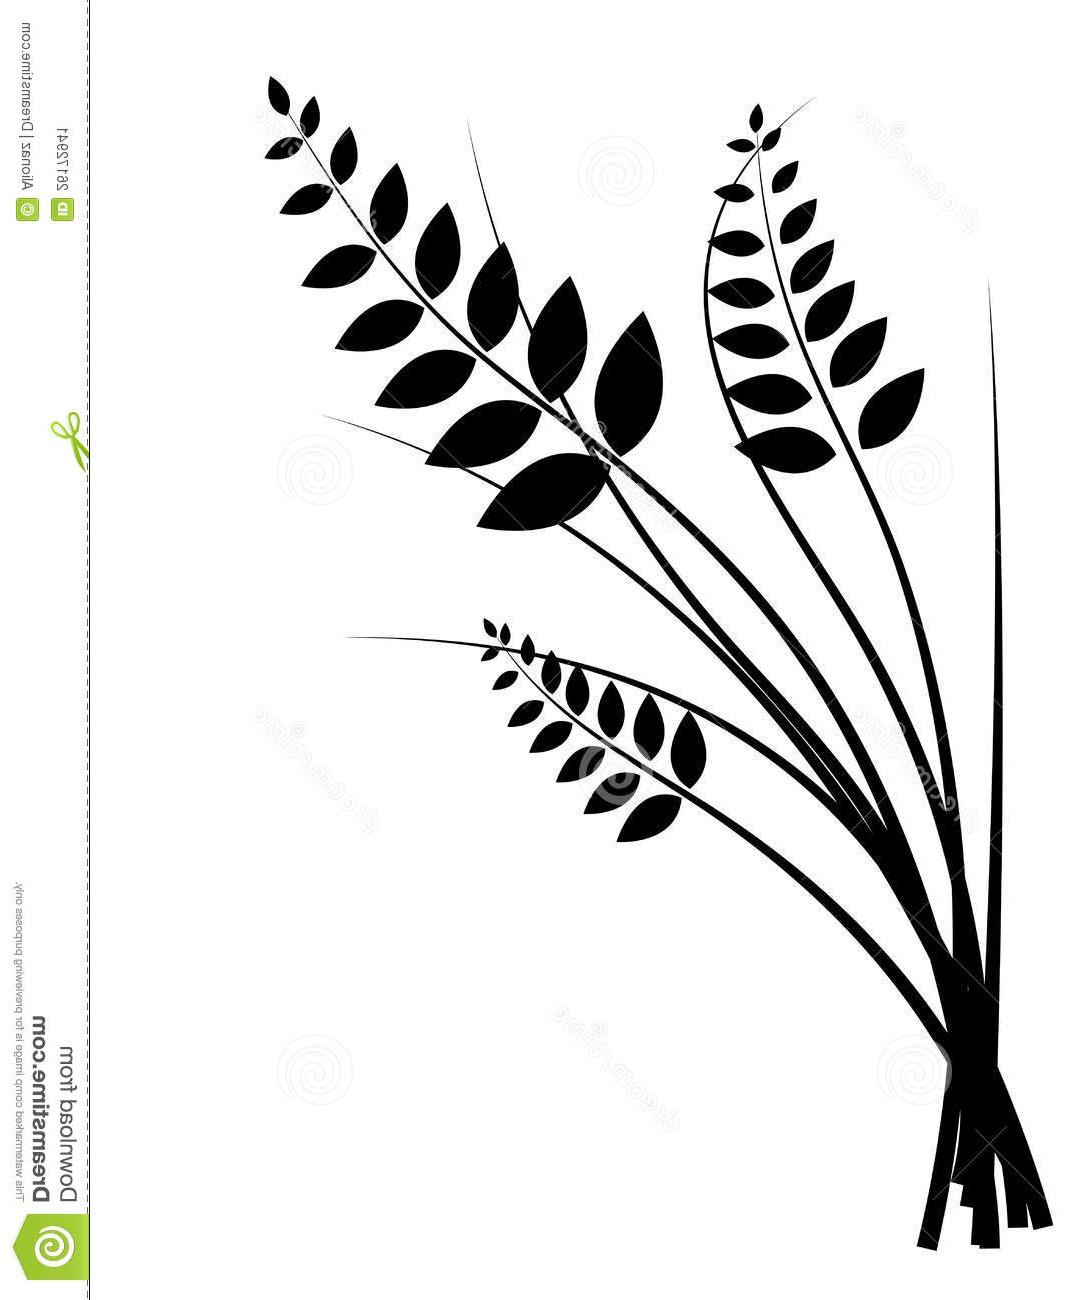 HD Wheat Clip Art Black And White Design » Free Vector Art, Images.